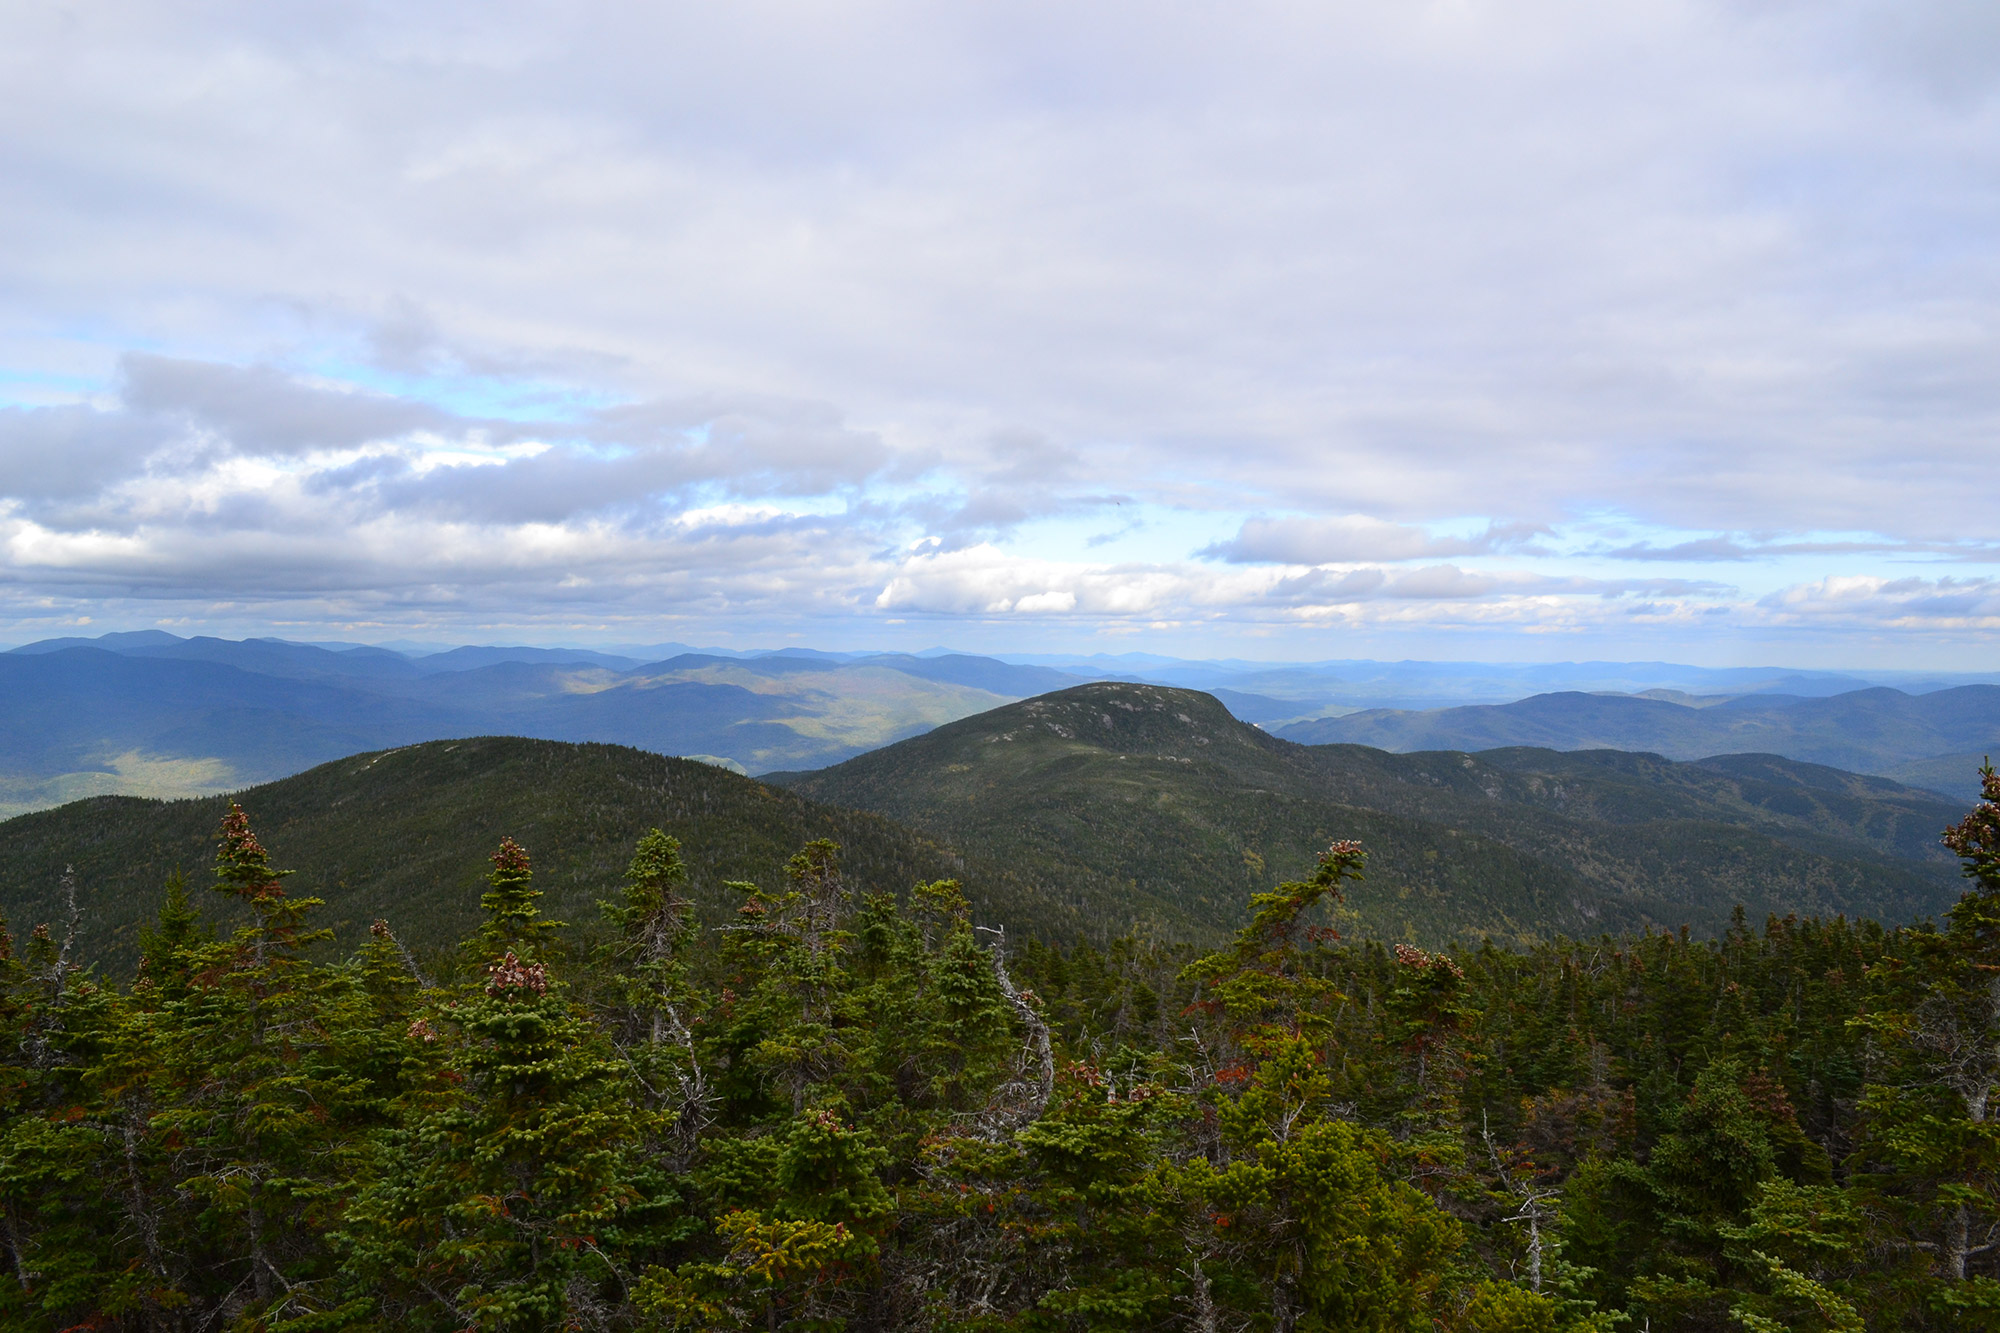 Looking northeast from an overlook near Mount Moriah's summit. | Credit: Douglas Martland